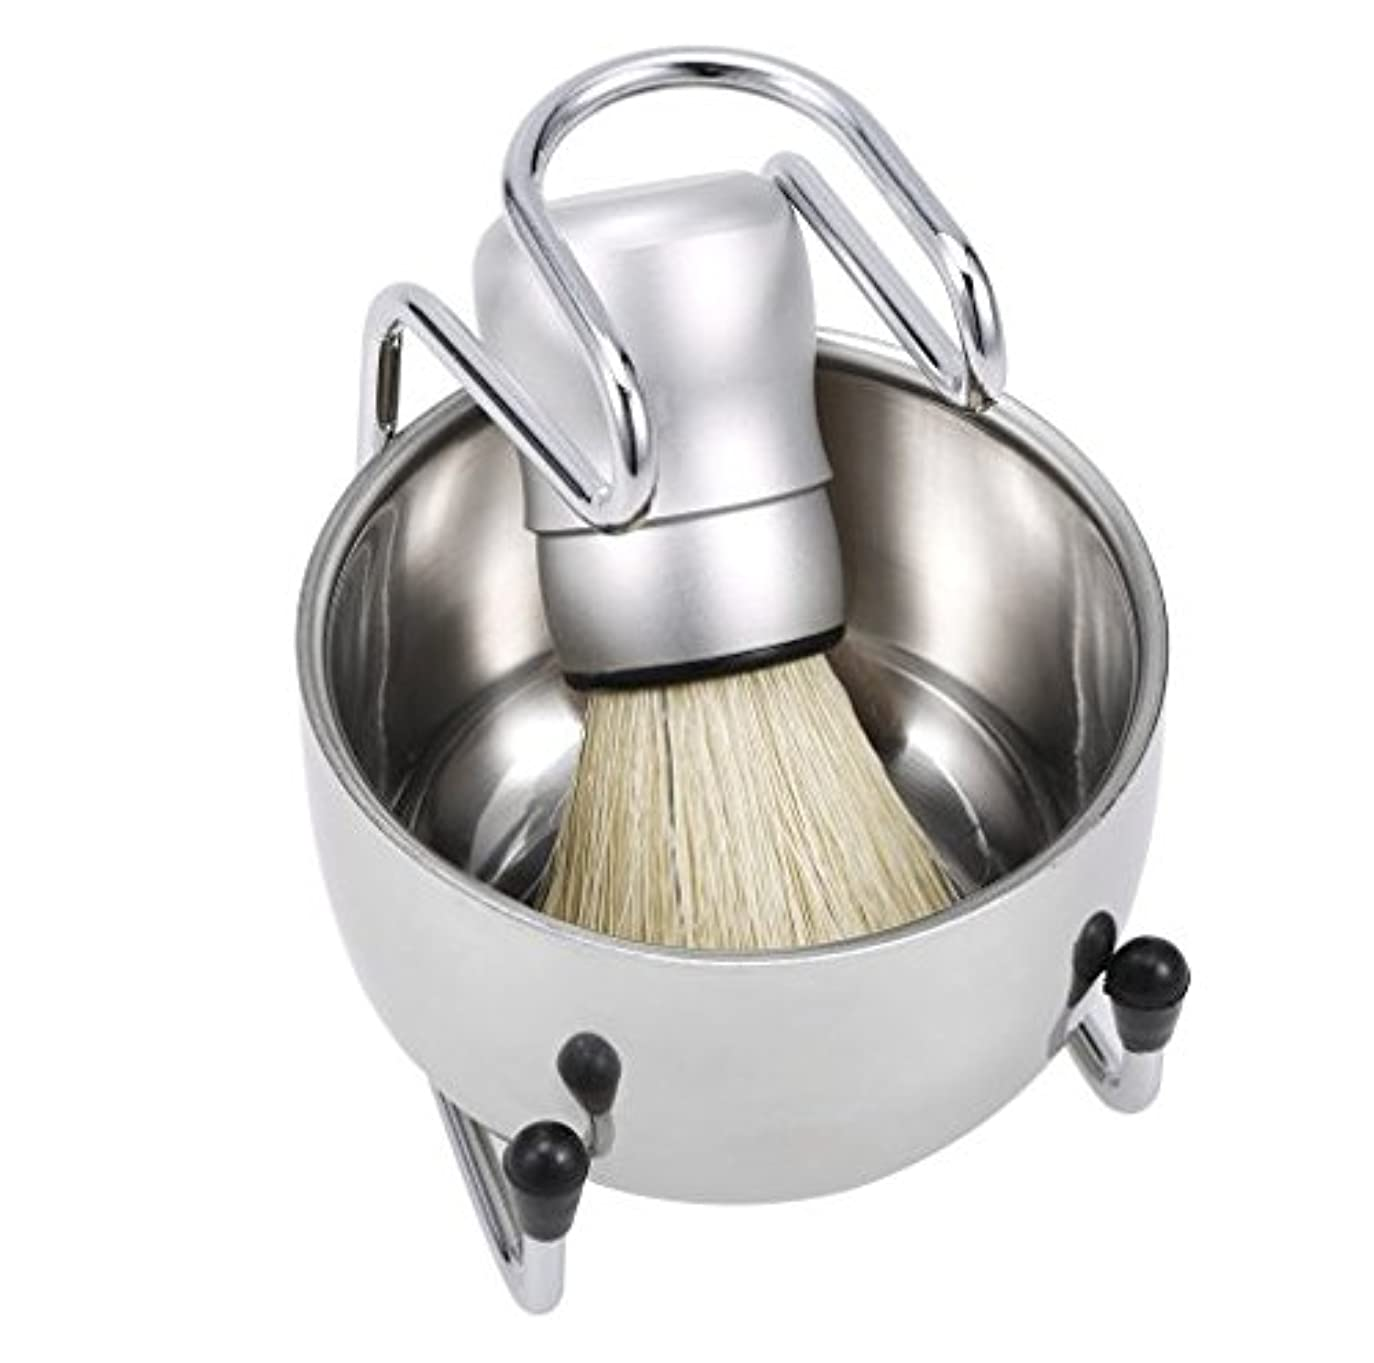 倍増背が高い生きる3 in 1 Men's Shaving Tools Set Well Polished Shaving Brush Soap Bowl Stand Holder Badger Hair Male Face Cleaning